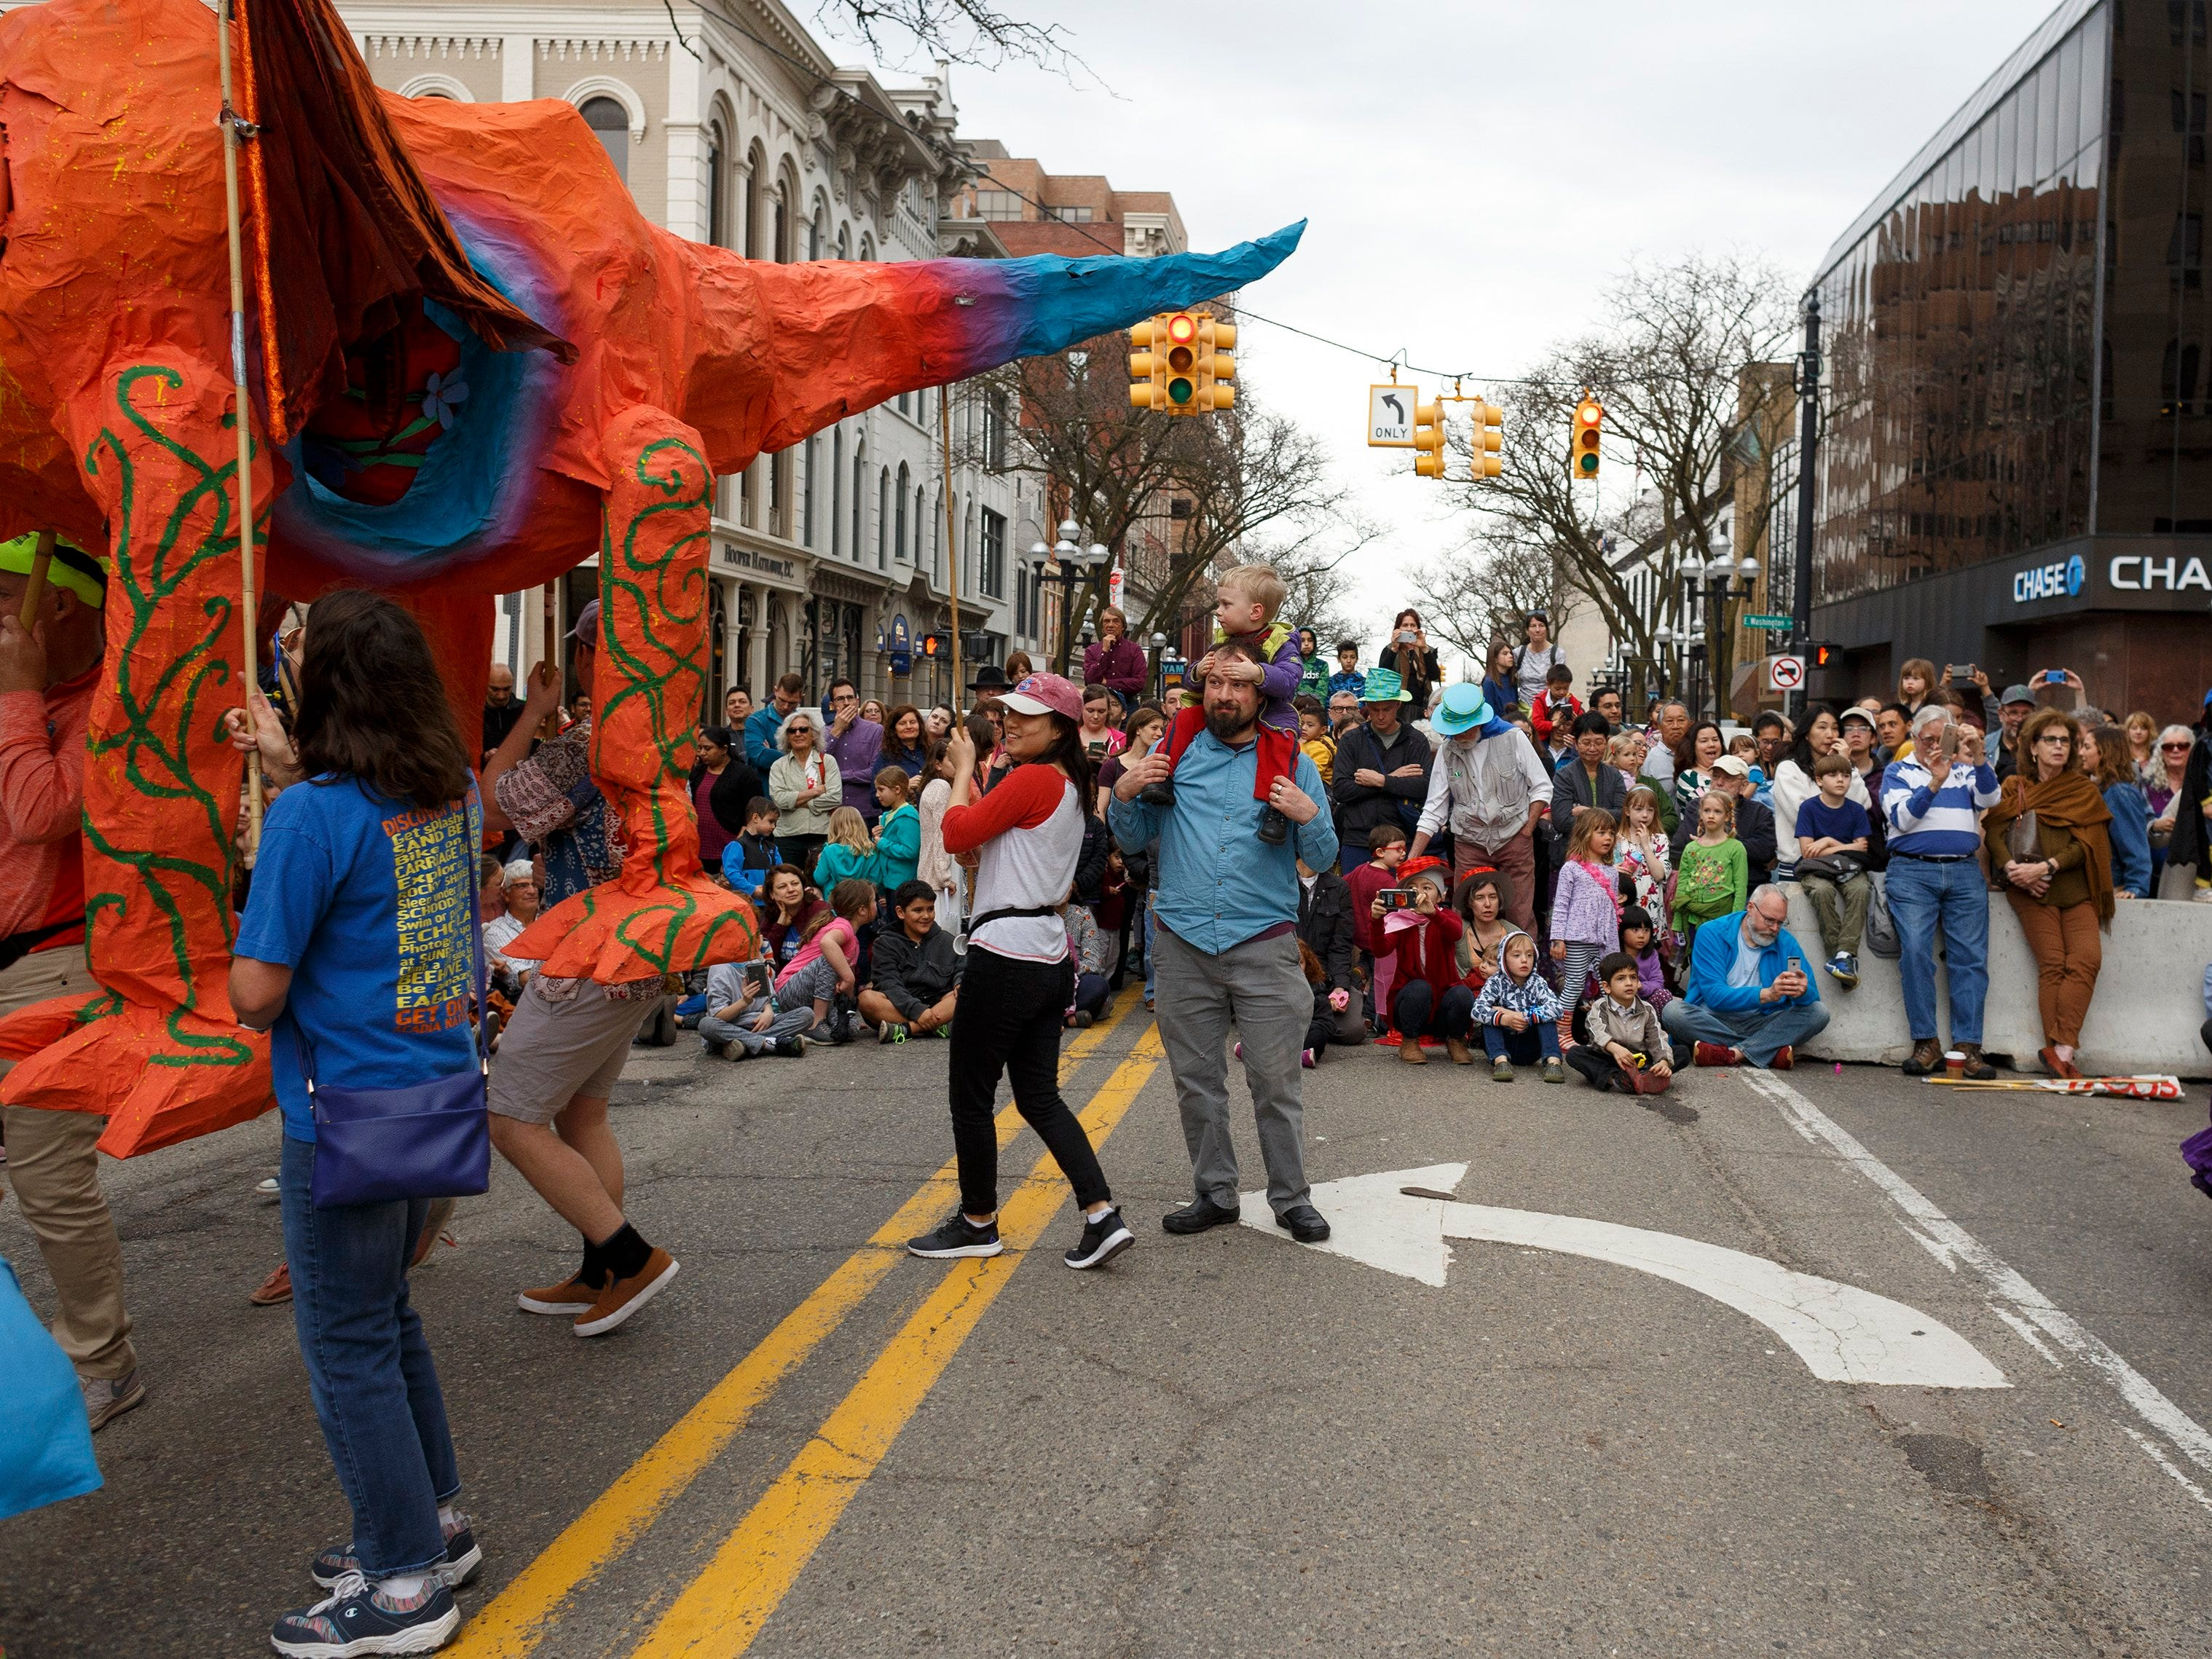 The annual FestiFools parade on Sunday, April 7, 2019 on South Main Street in downtown Ann Arbor.